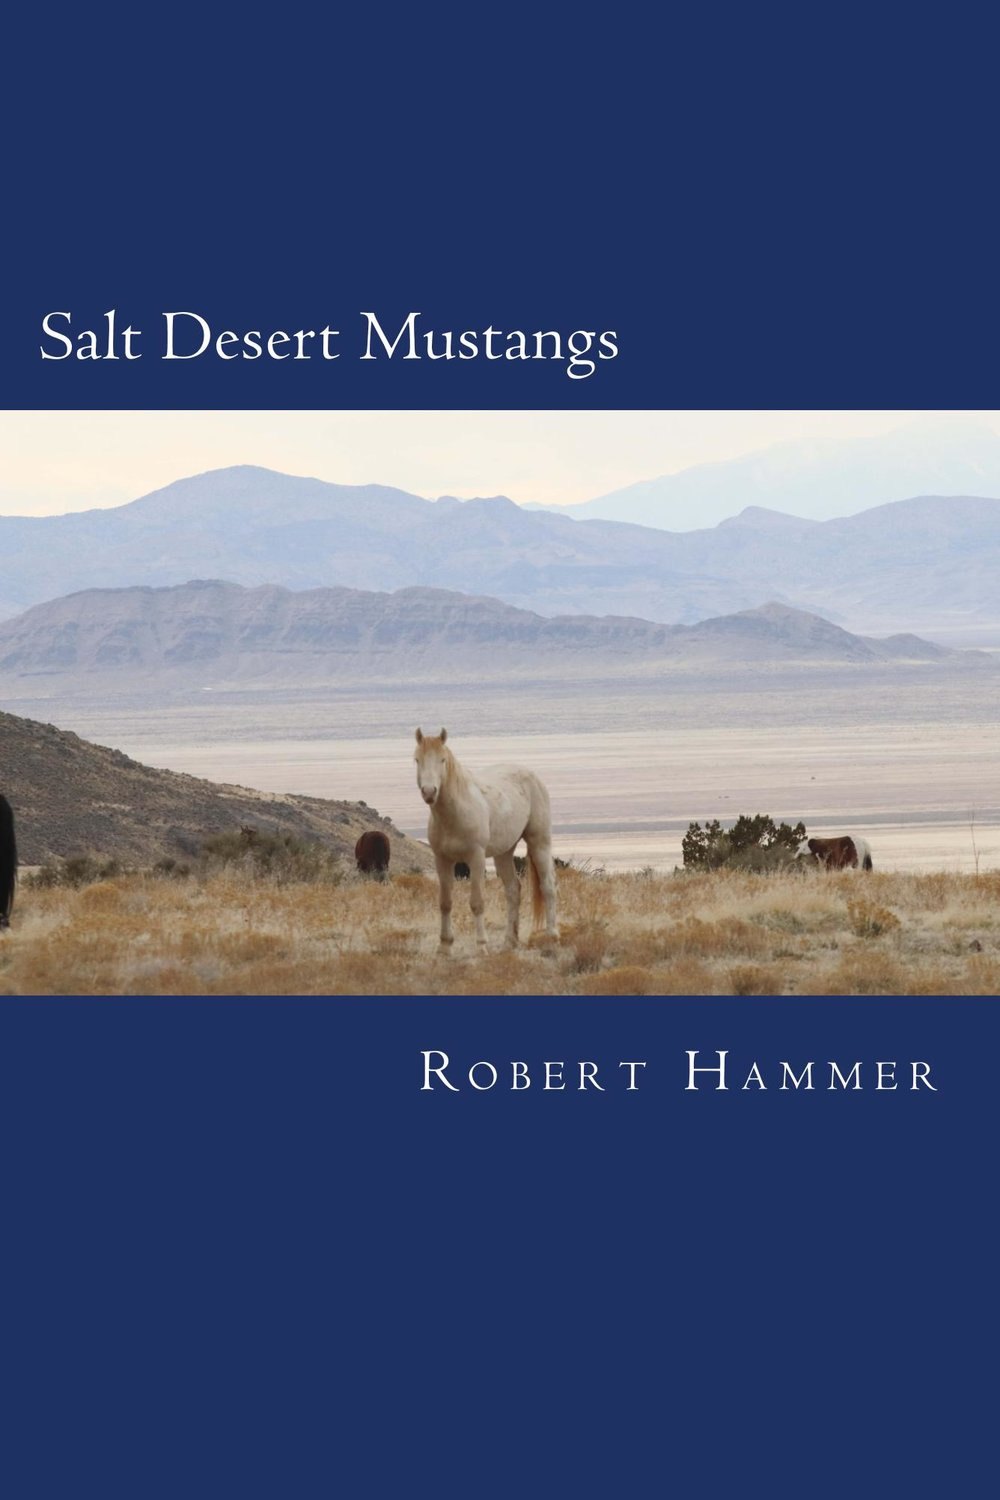 Available now! - Salt Desert Mustangs: Discovering wild horses and historic trails in Tooele County, UtahWhat do Kit Carson, the Donner Party, Mark Twain, Dwight Eisenhower and the founder of the Indianapolis 500 have in common?  They all tie into the history of the roads and trails crossing Tooele County, Utah. Explore the fascinating history of the region these magnificent horses continue to call home.Click here to order your copy today!Proceeds help keep this free web resource online.